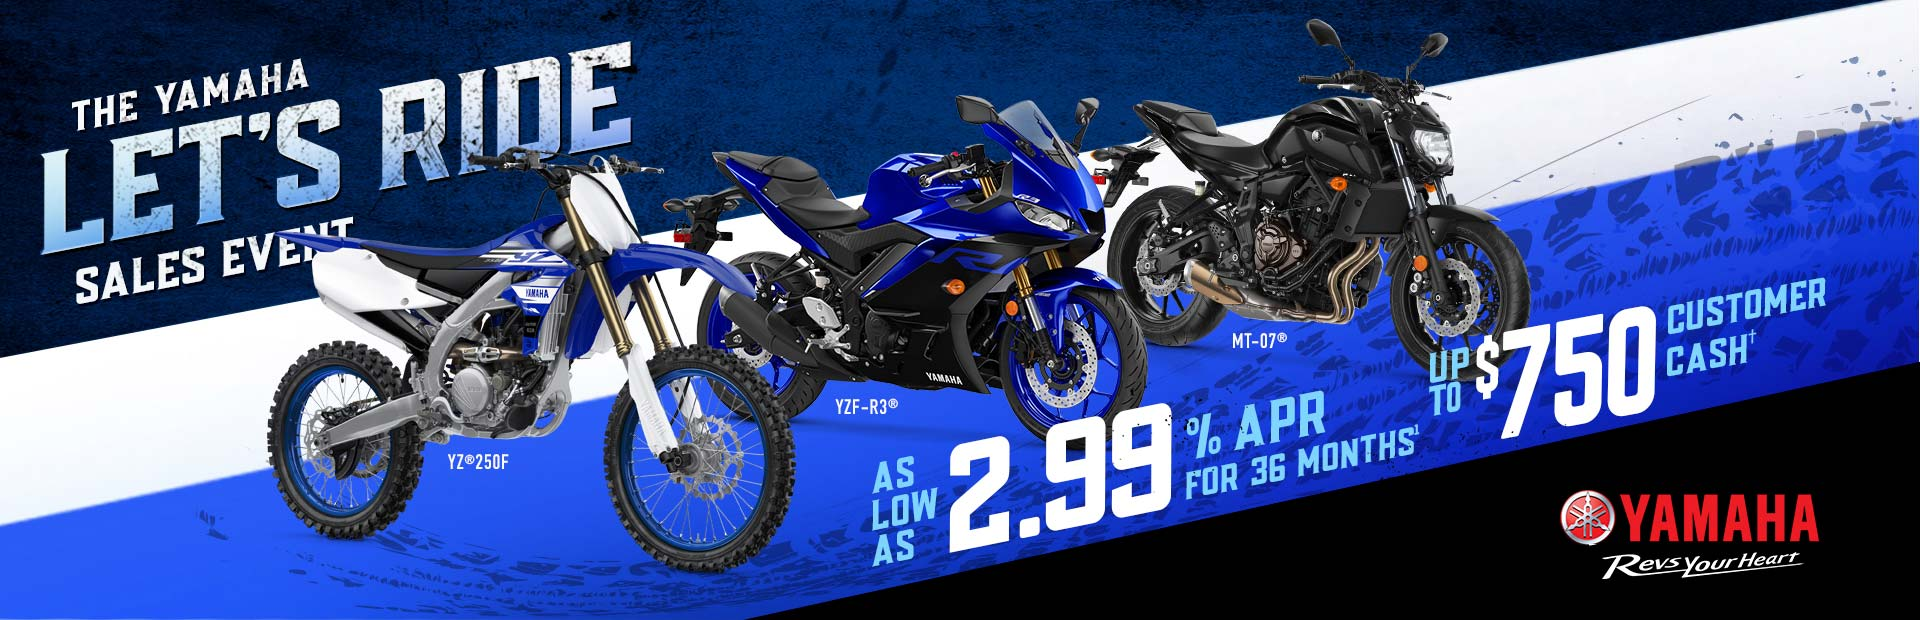 Yamaha: THE YAMAHA LET'S RIDE SALES EVENT